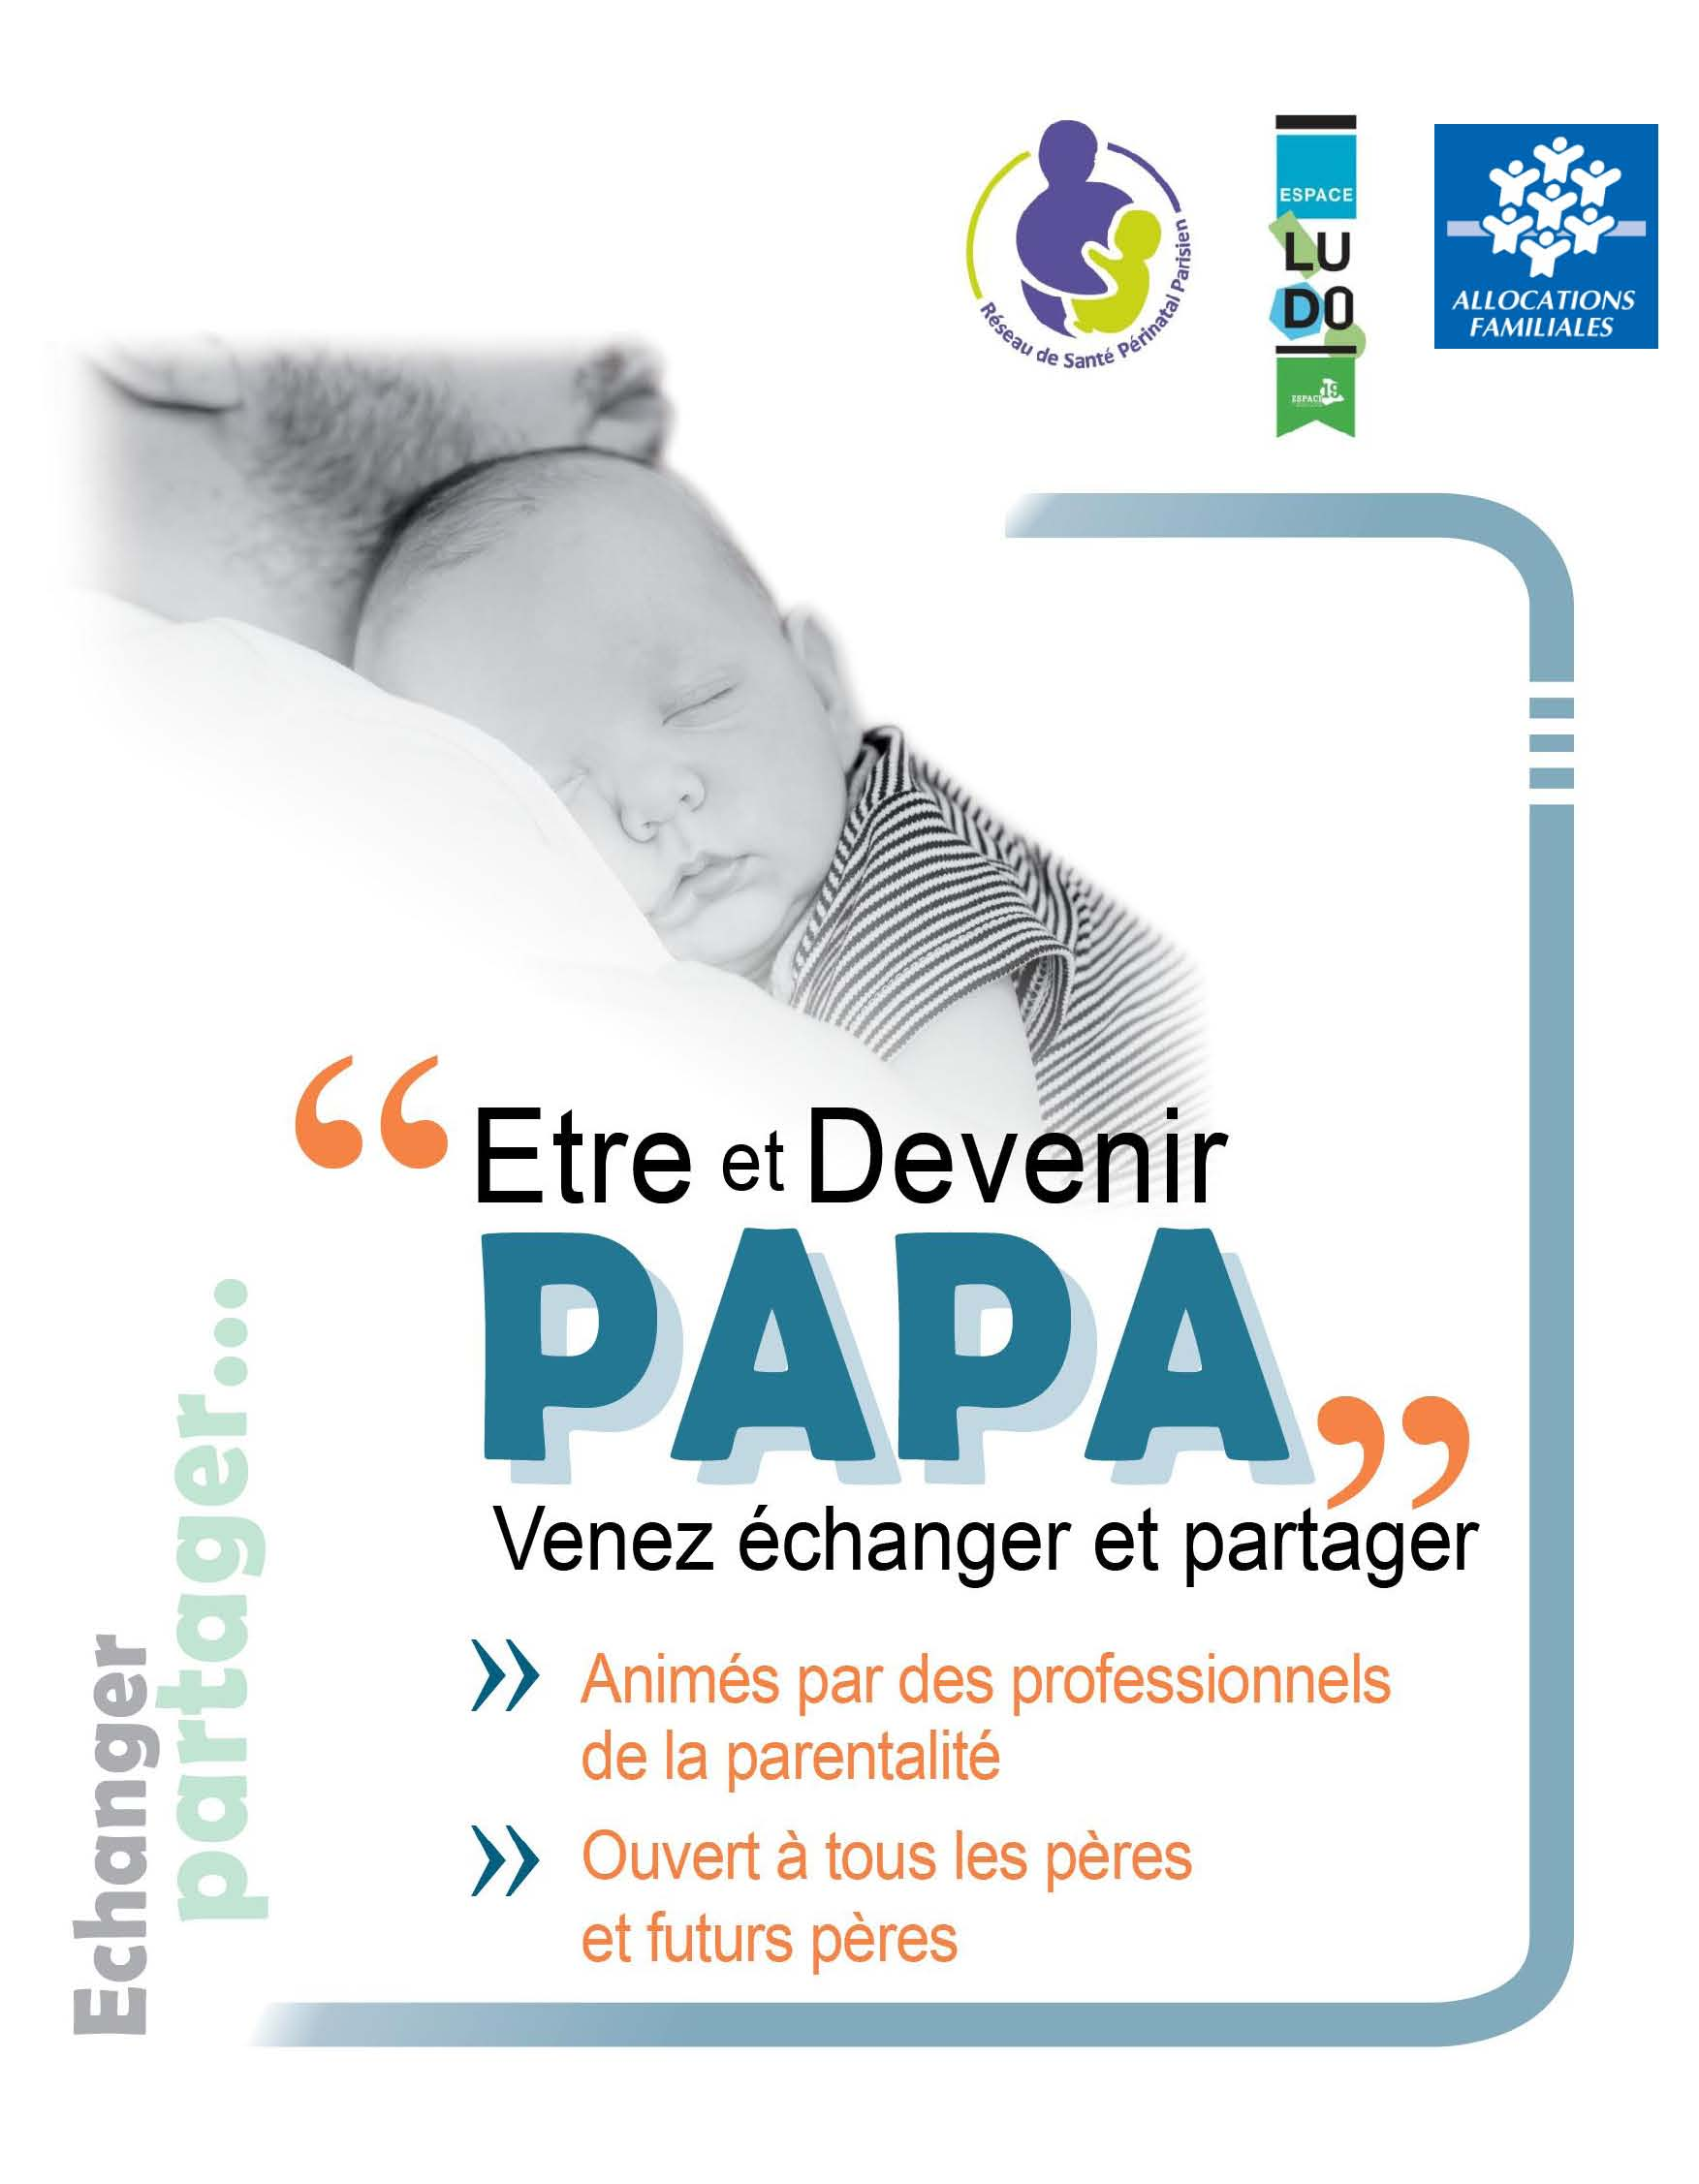 Affiche pere base logos versionWord